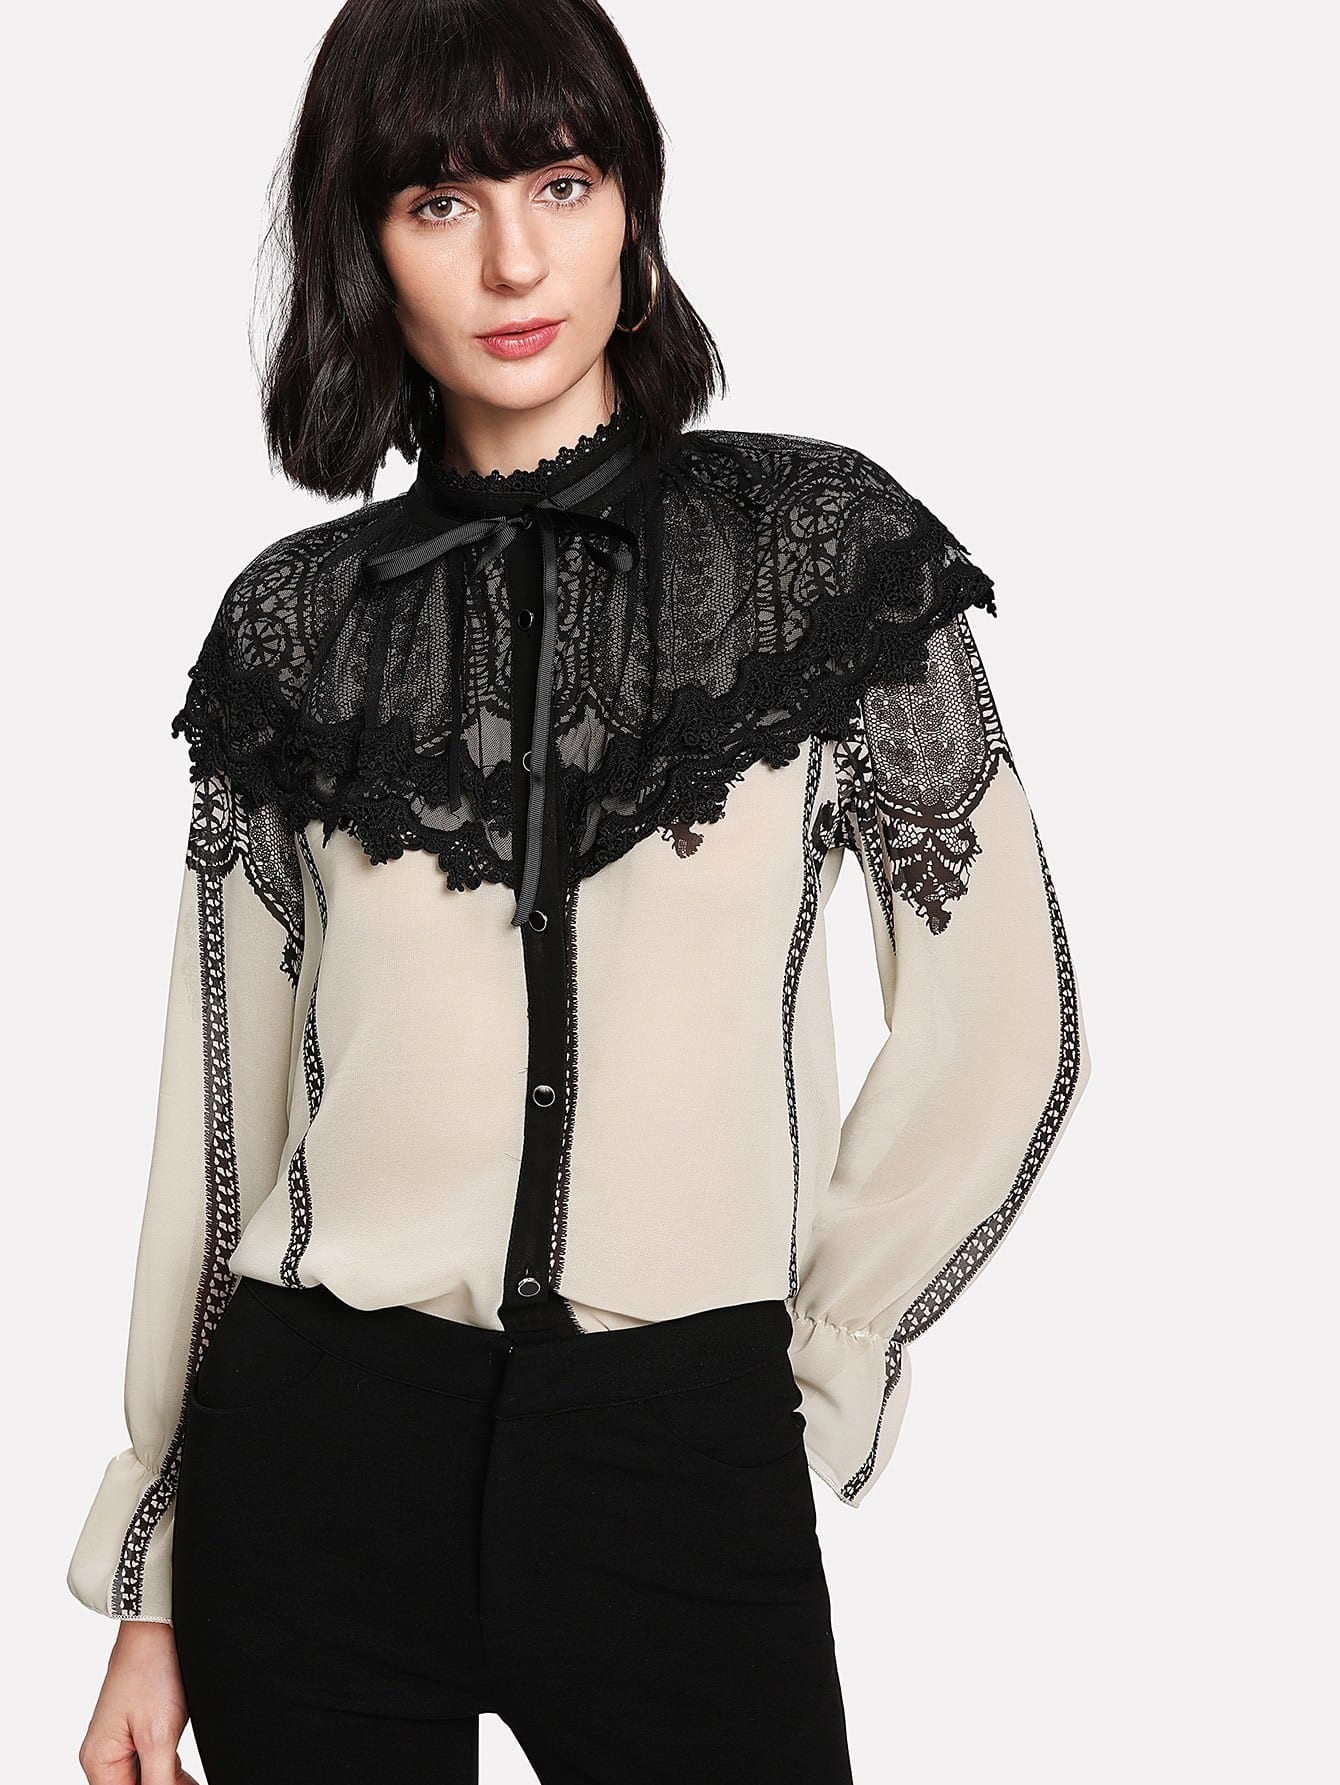 Lace Contrast Bow Tie Neck Blouse contrast embroidered mesh yoke bow tie striped blouse